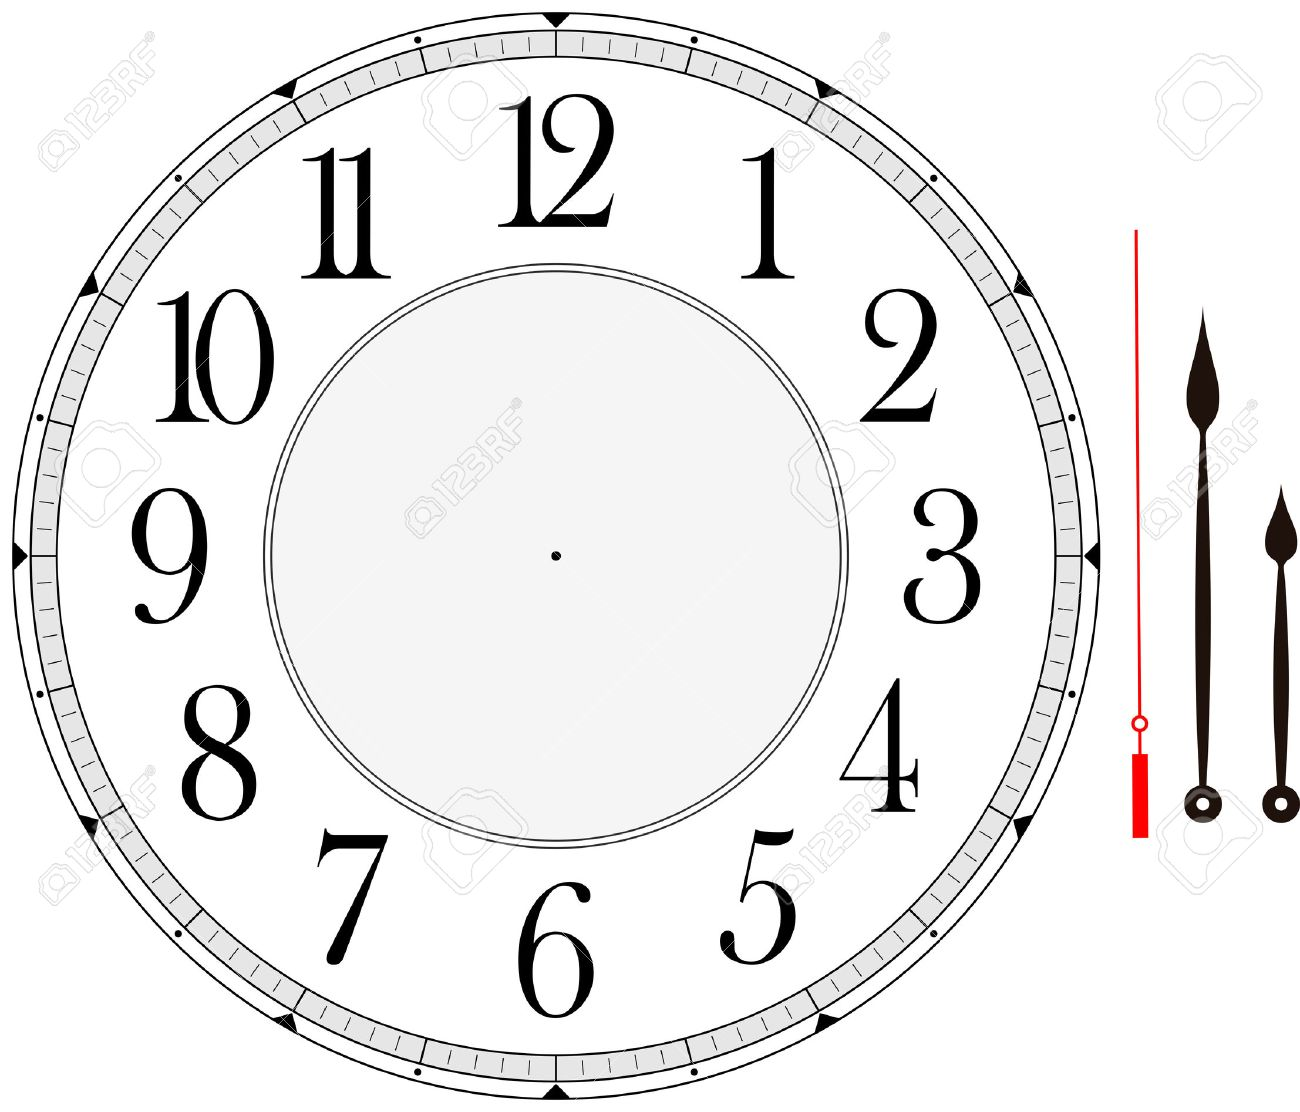 image about Free Printable Clock Face With Hands identified as clock experience template with hour, instant and moment arms in the direction of crank out..